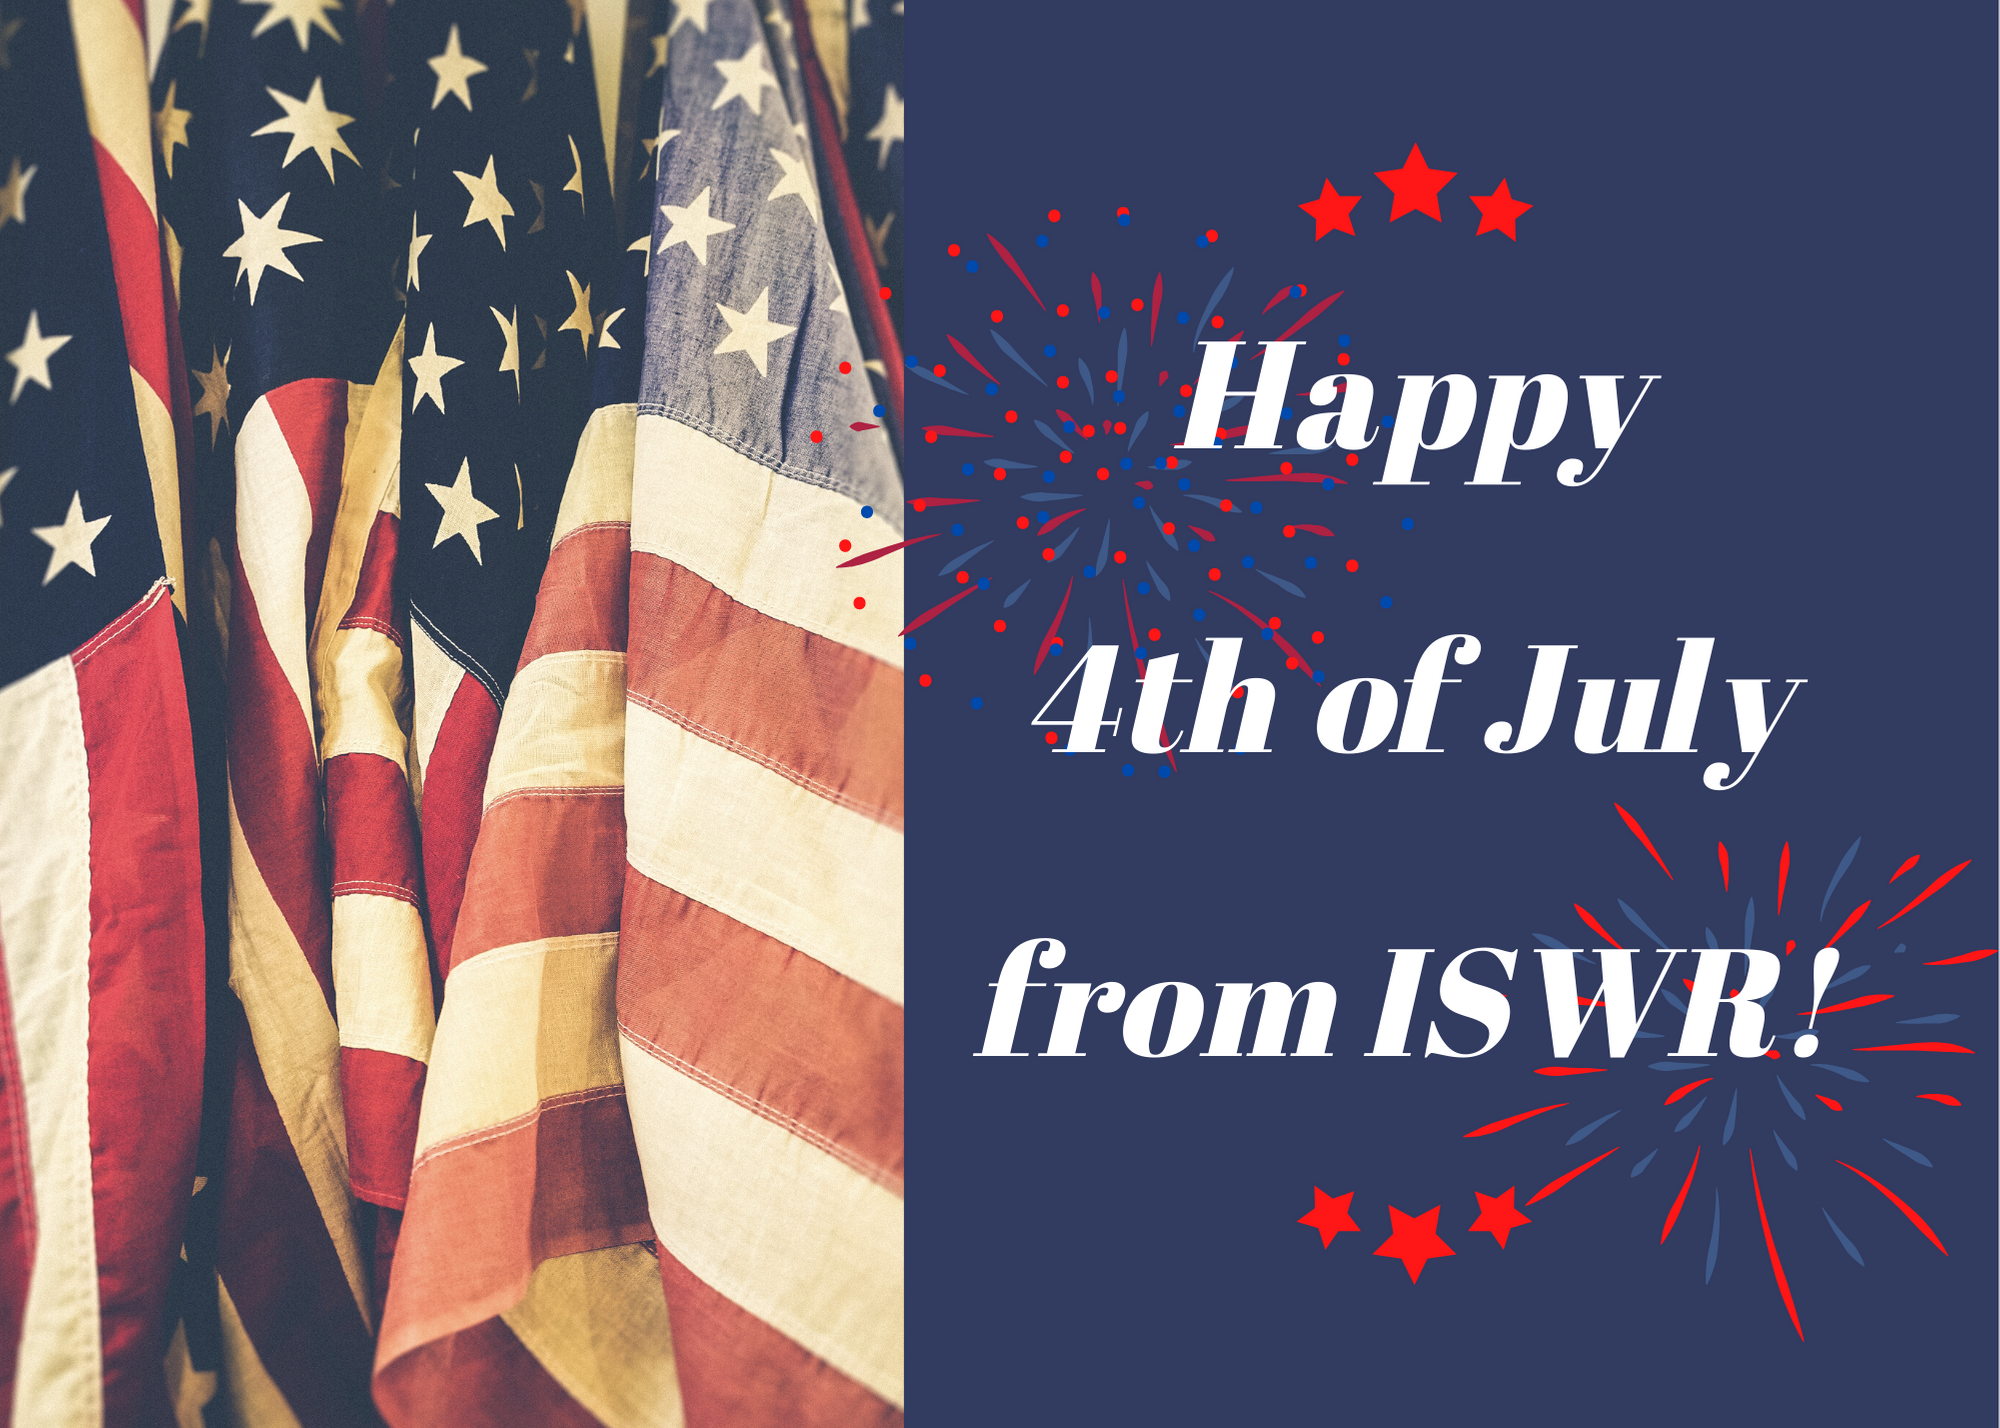 Happy 4th of July from ISWR